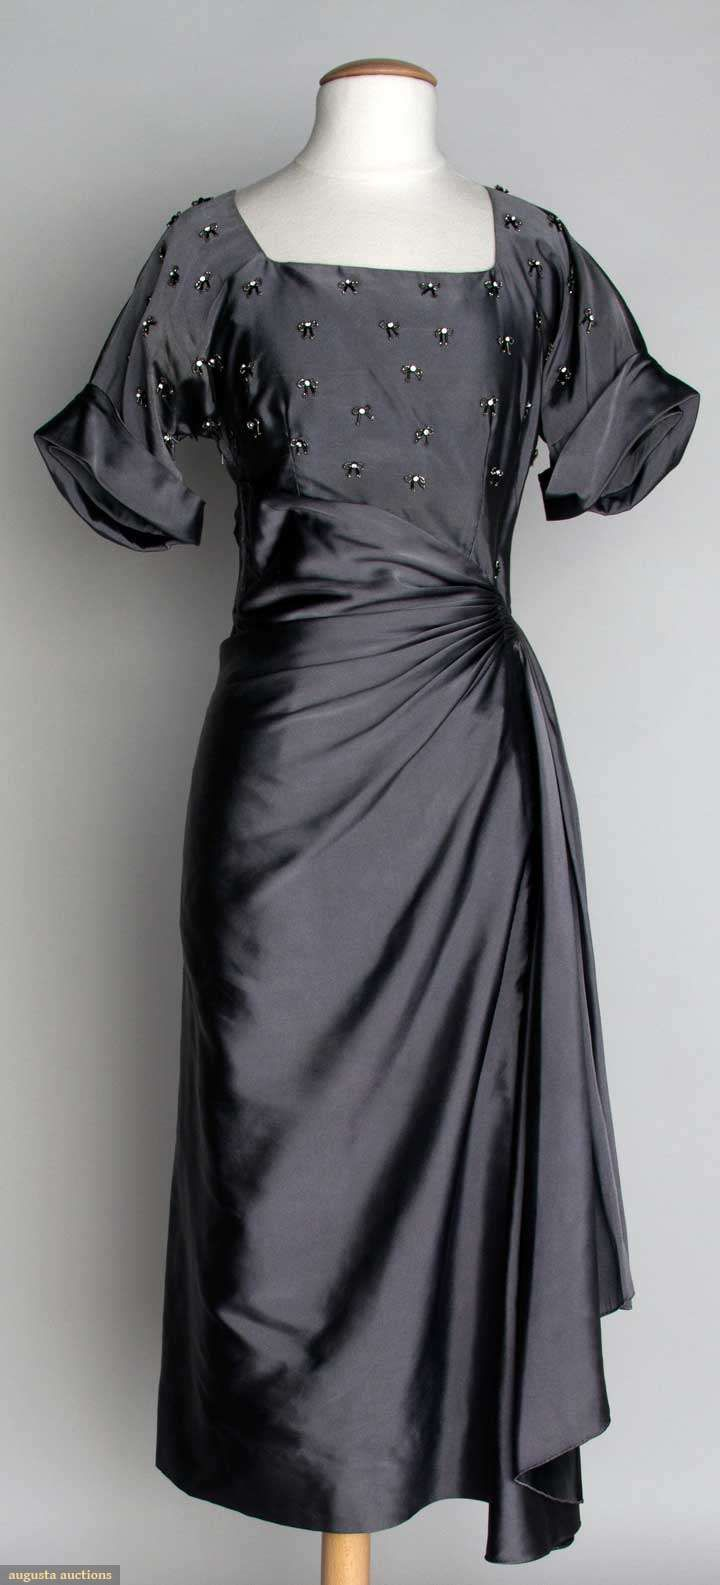 Jo Copeland Cocktail Dress, 1940s, Augusta Auctions, November 13, 2013 - NYC…